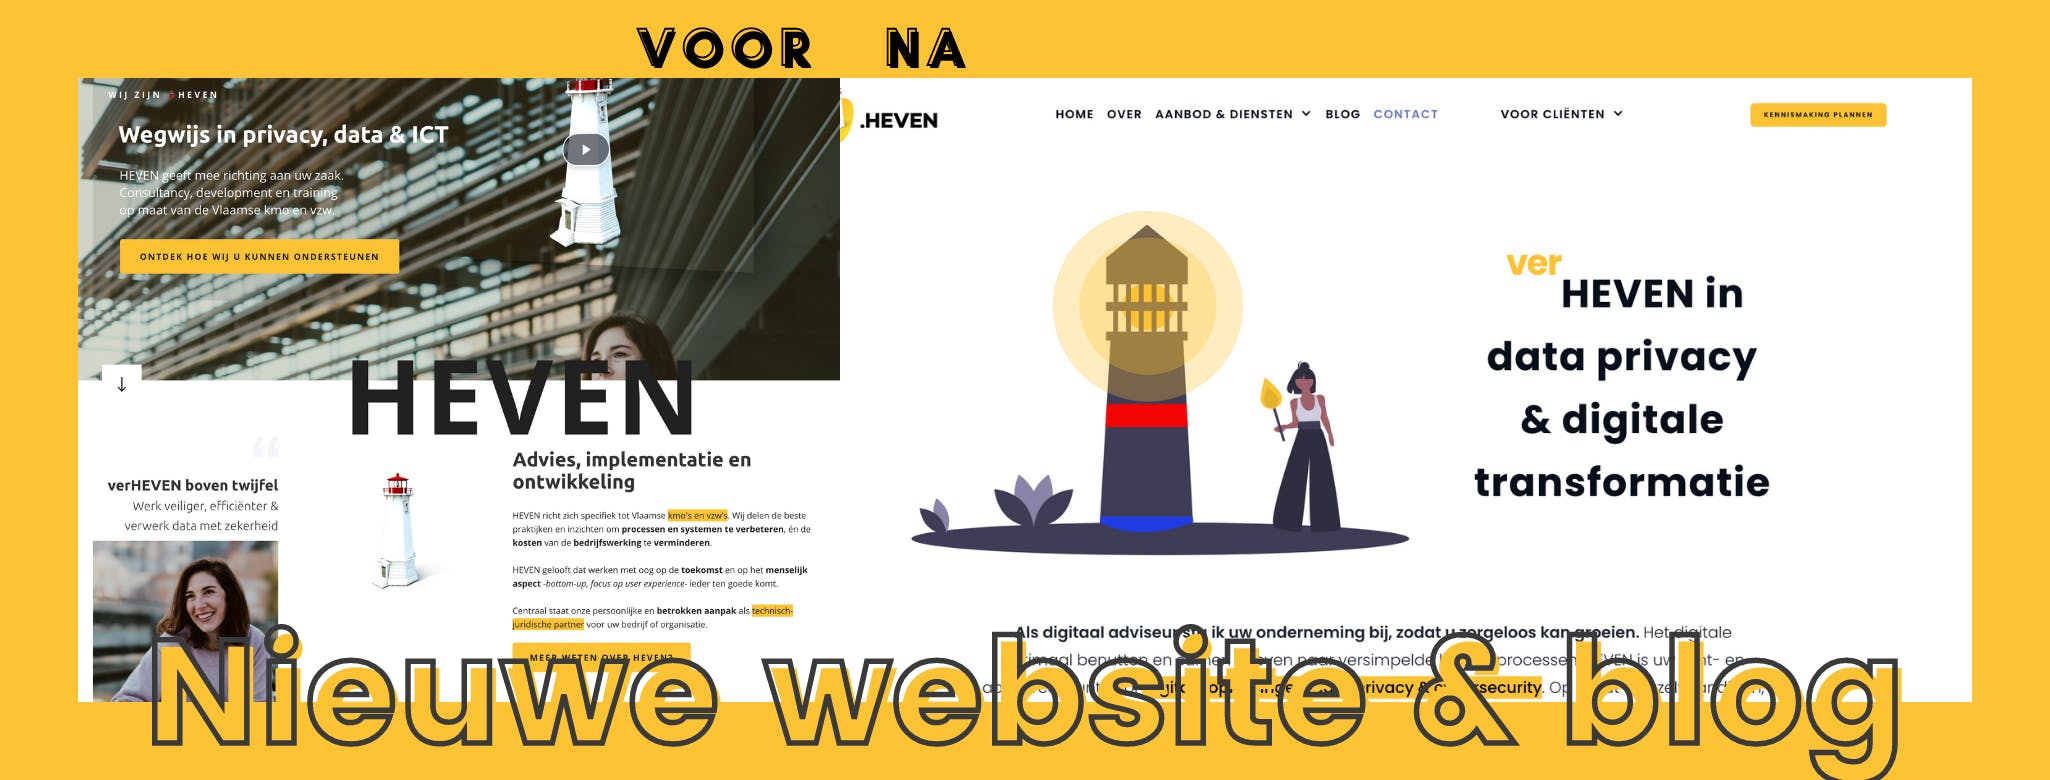 Cover Image for Nieuwe website en blog voor HEVEN